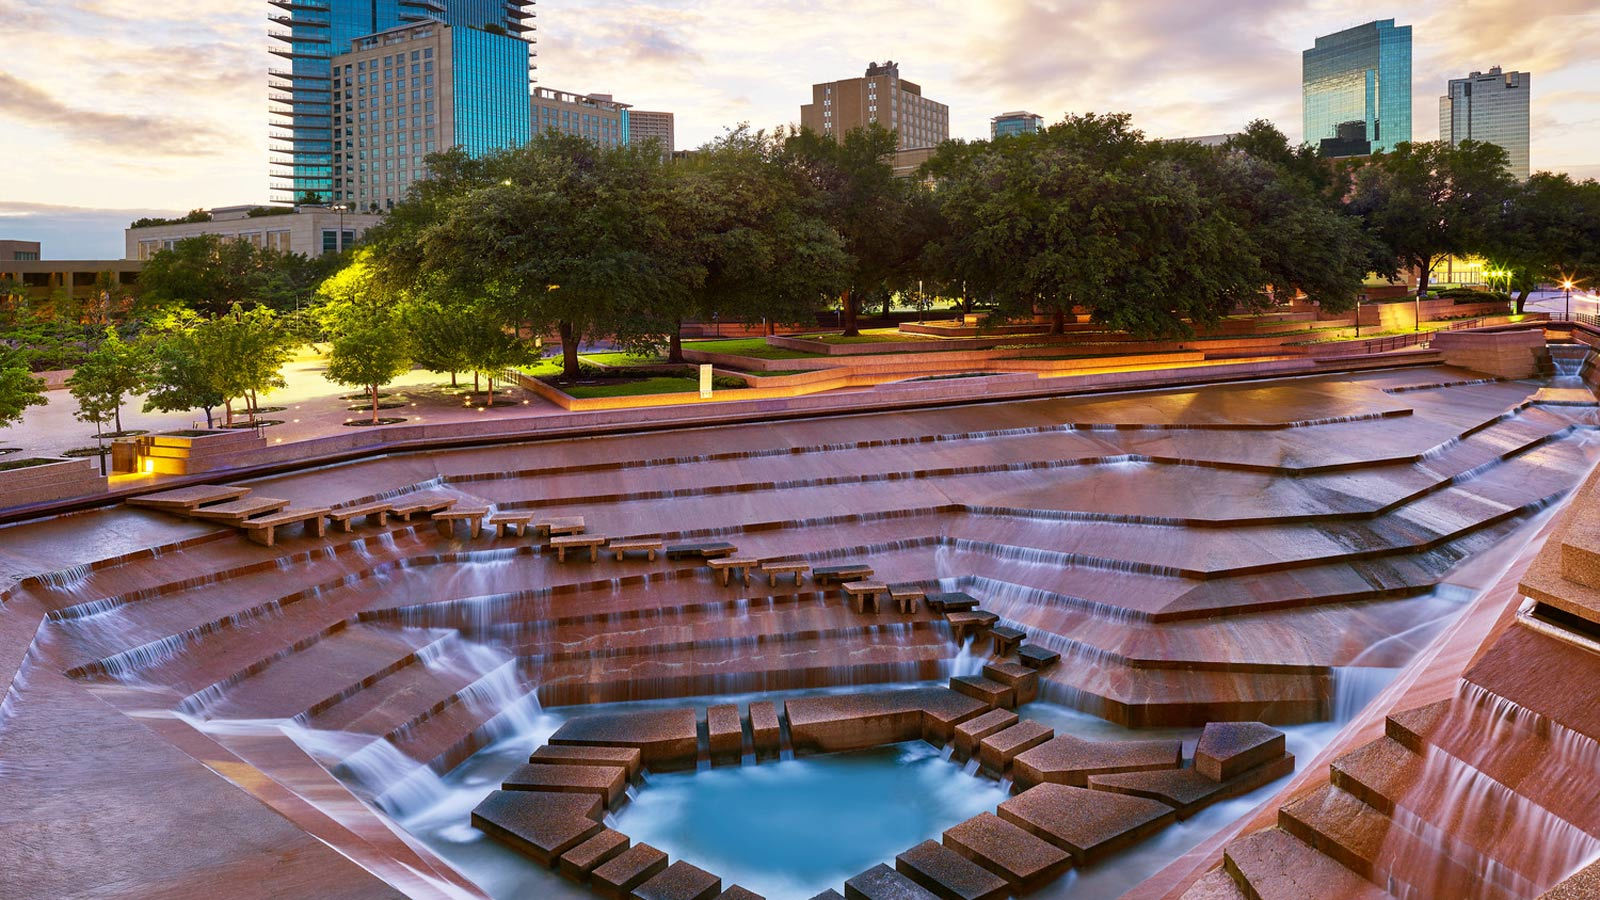 Fort worth water gardens sheraton fort worth downtown hotel for The water garden